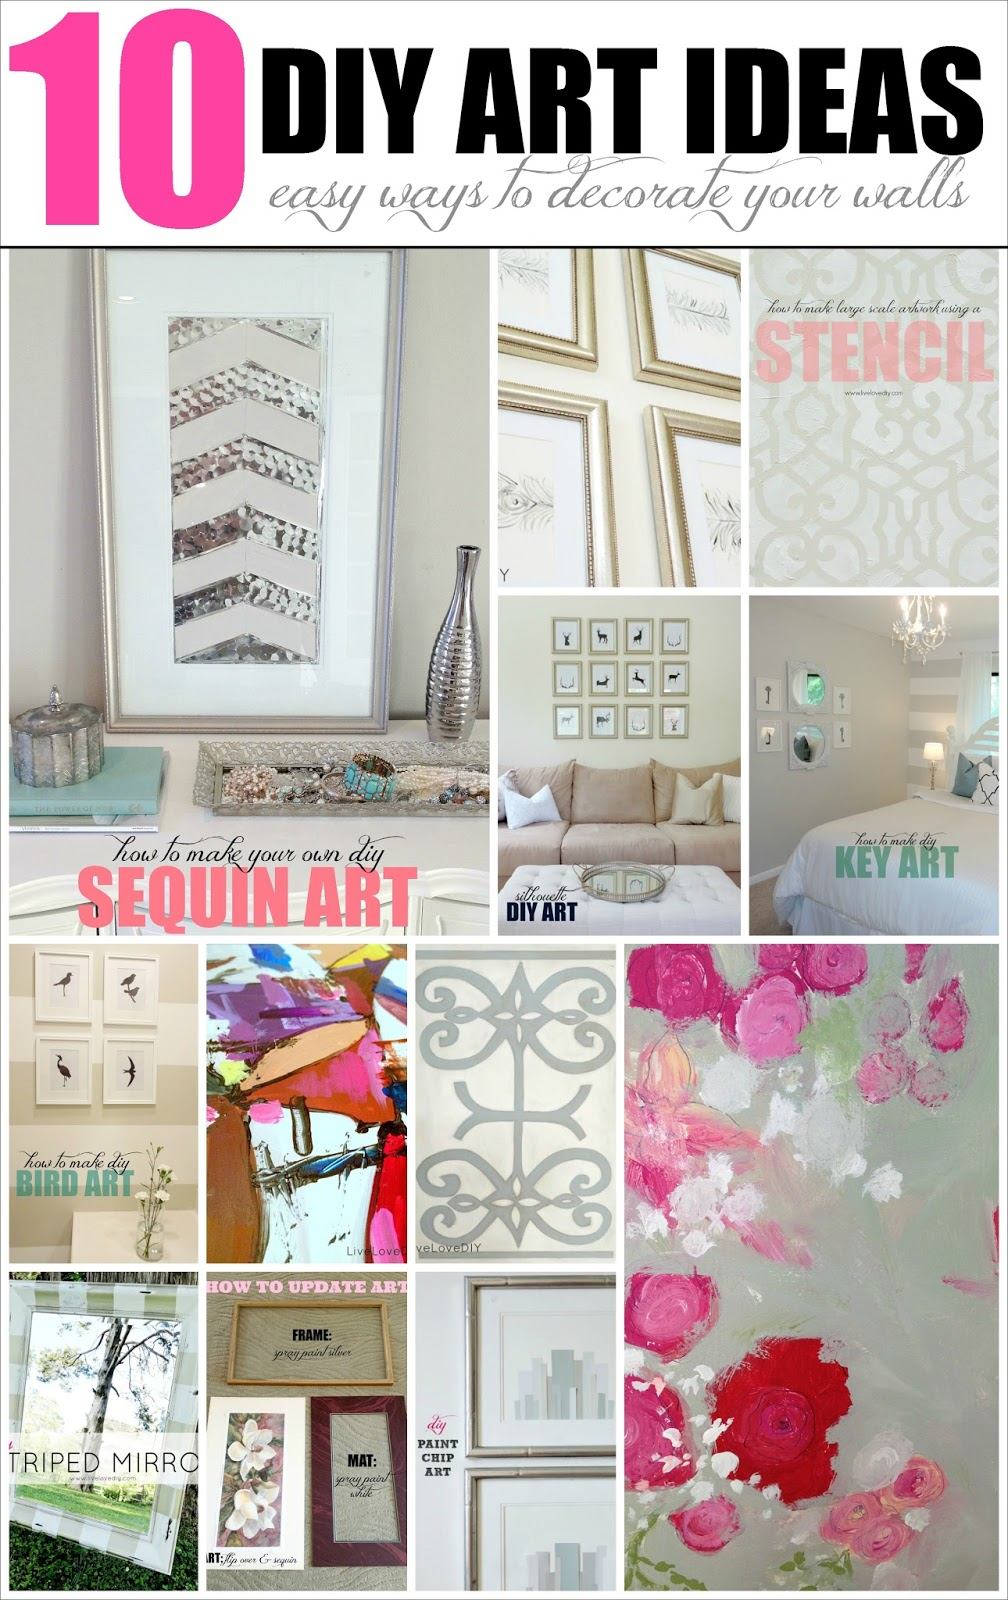 Livelovediy 10 diy art ideas easy ways to decorate your walls - Diy wall decorations ...